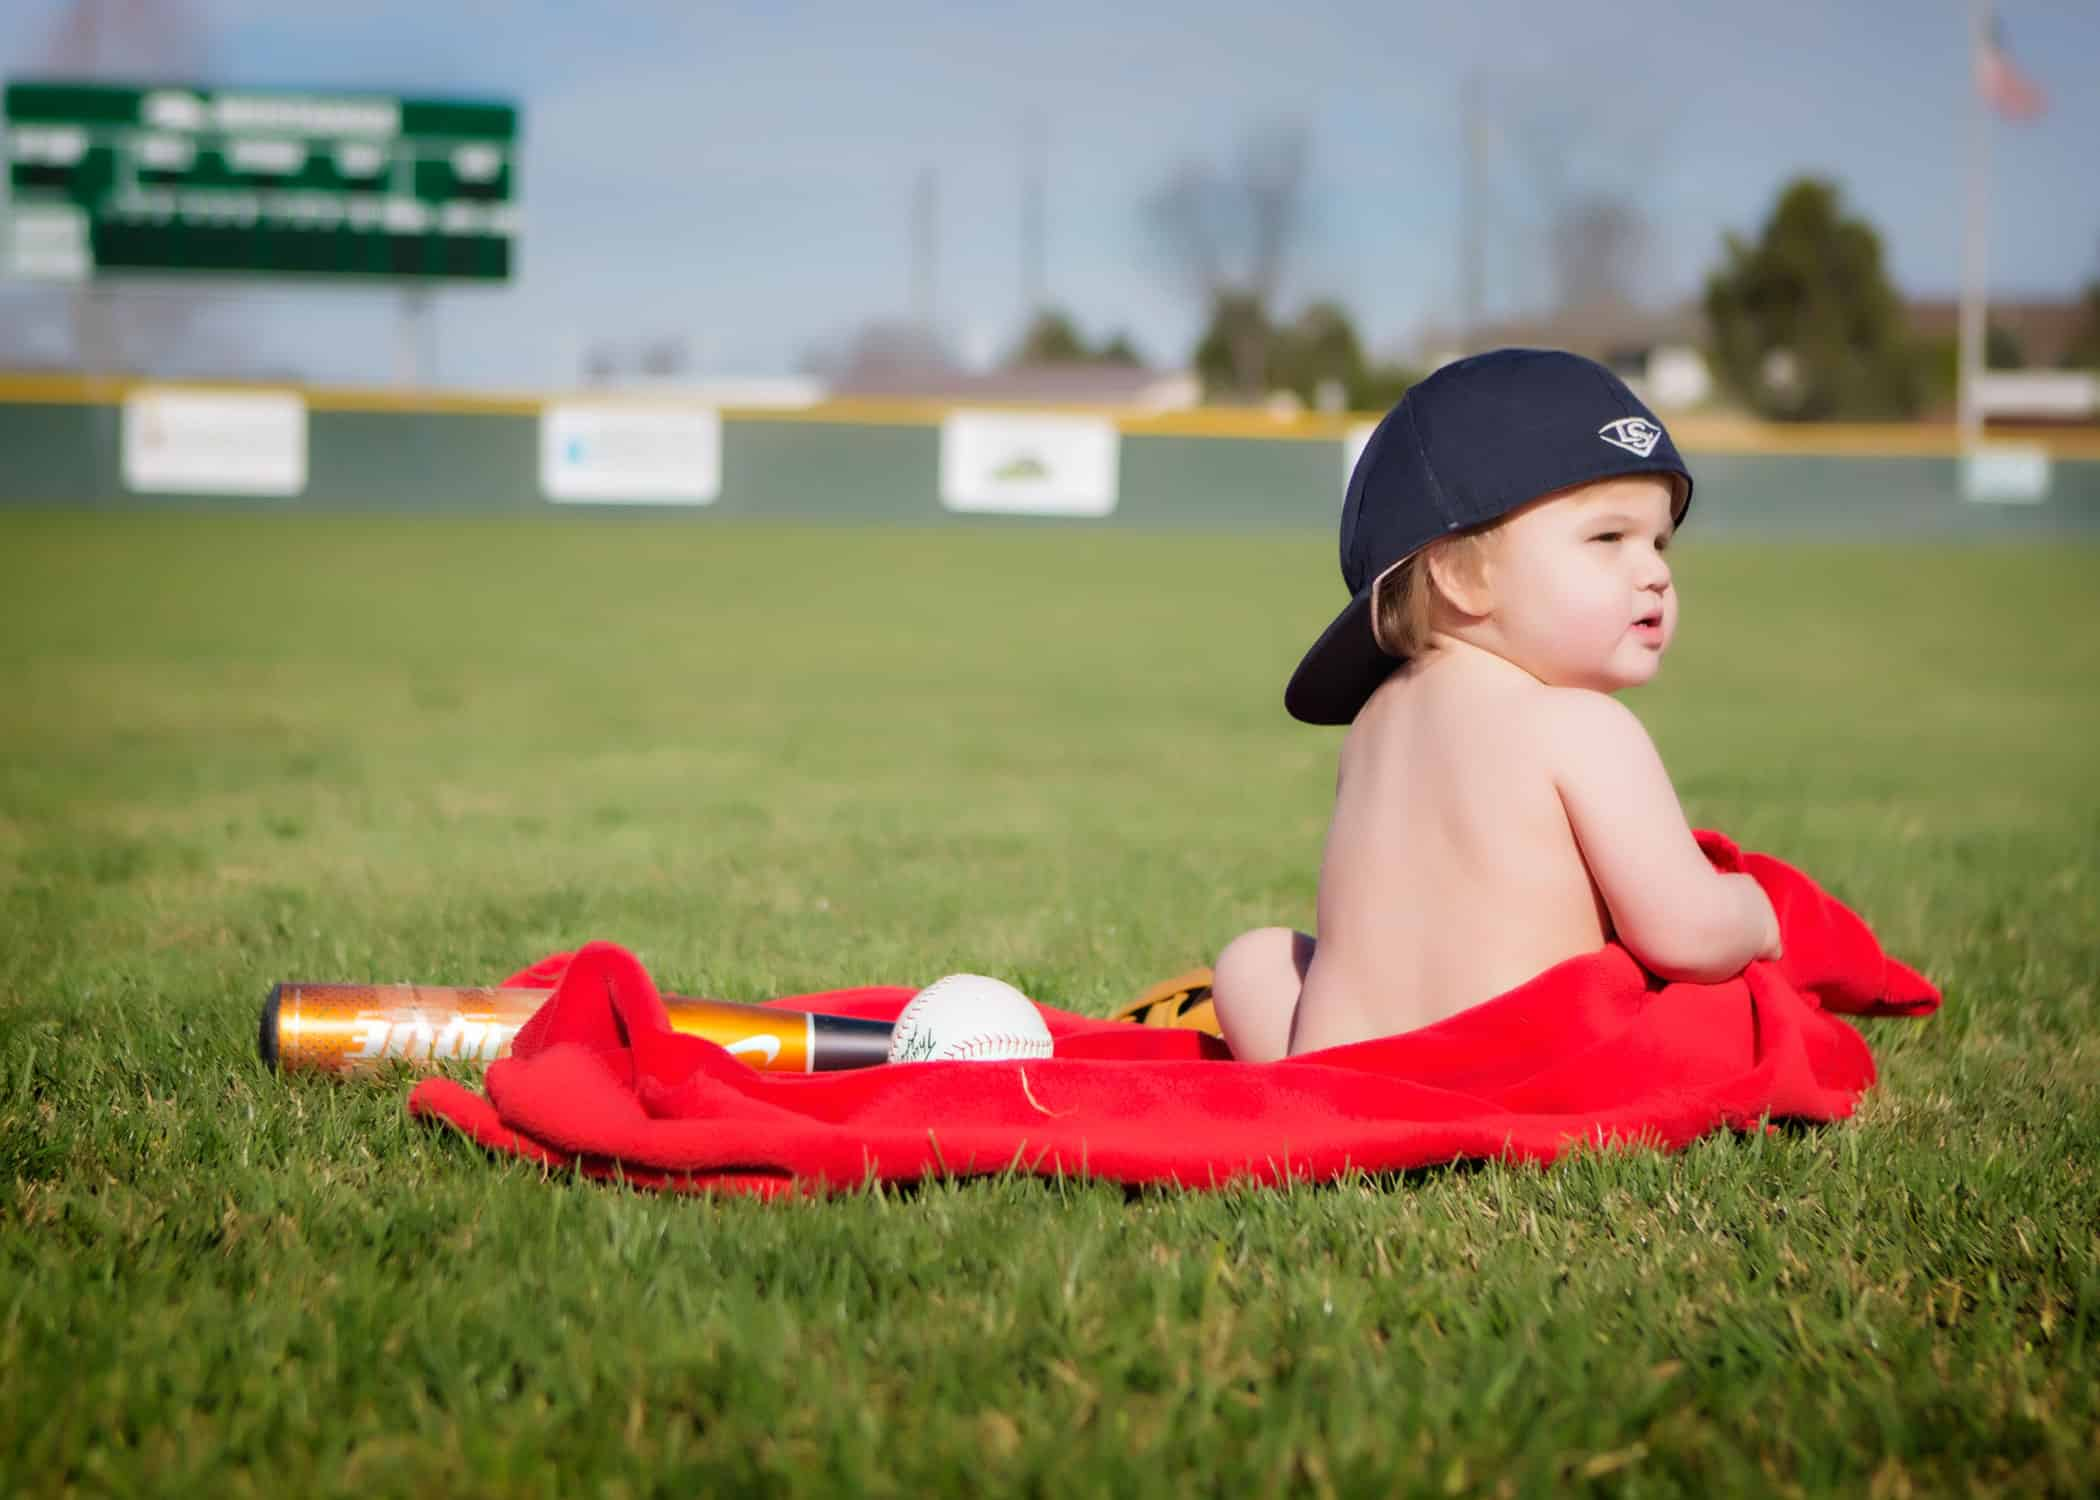 Baby sitting on red blanket with a baseball and bat.